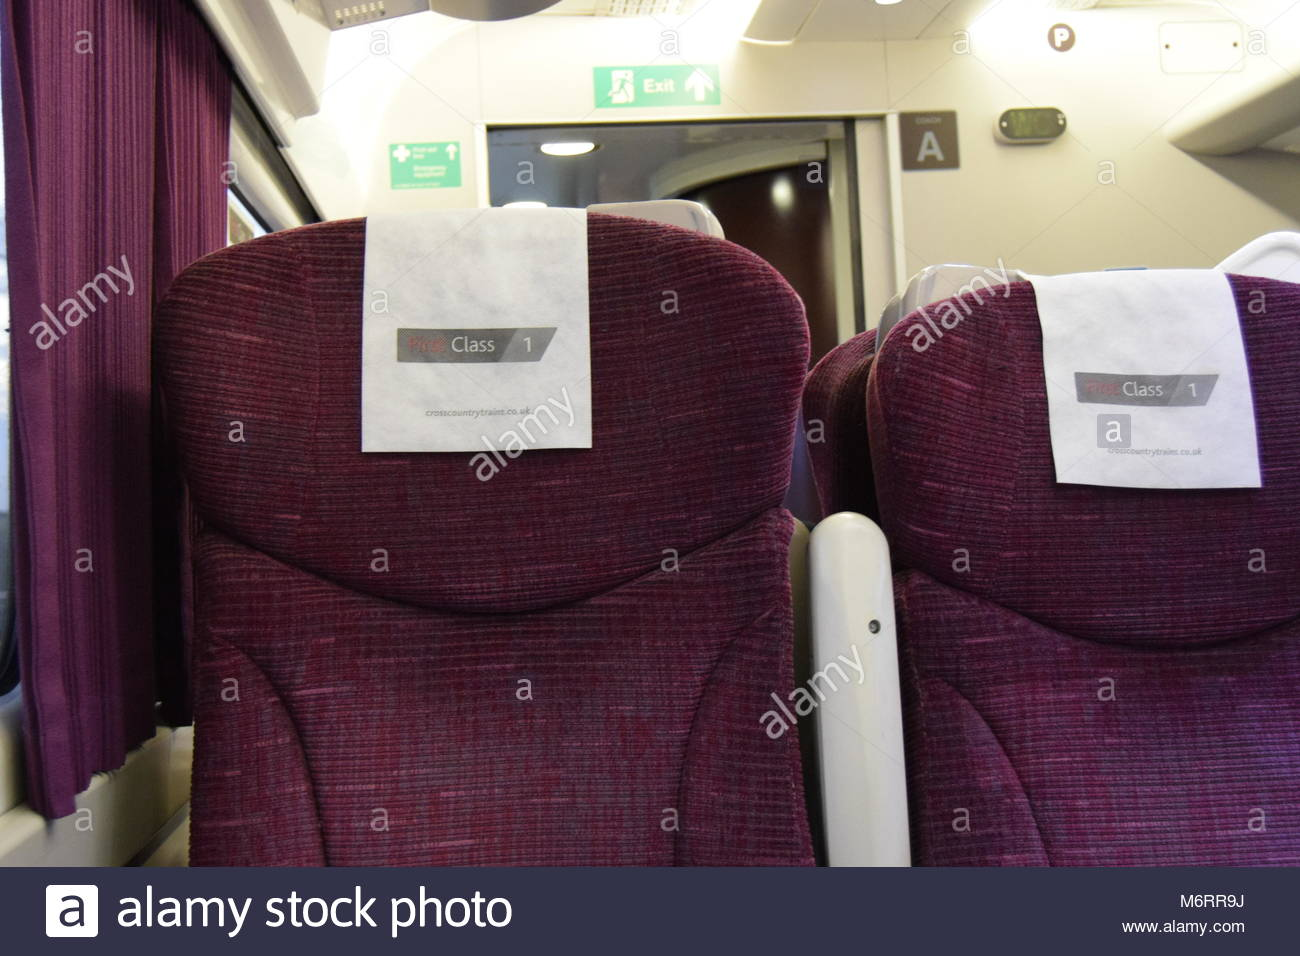 Train interiors of a cross country train - Stock Image